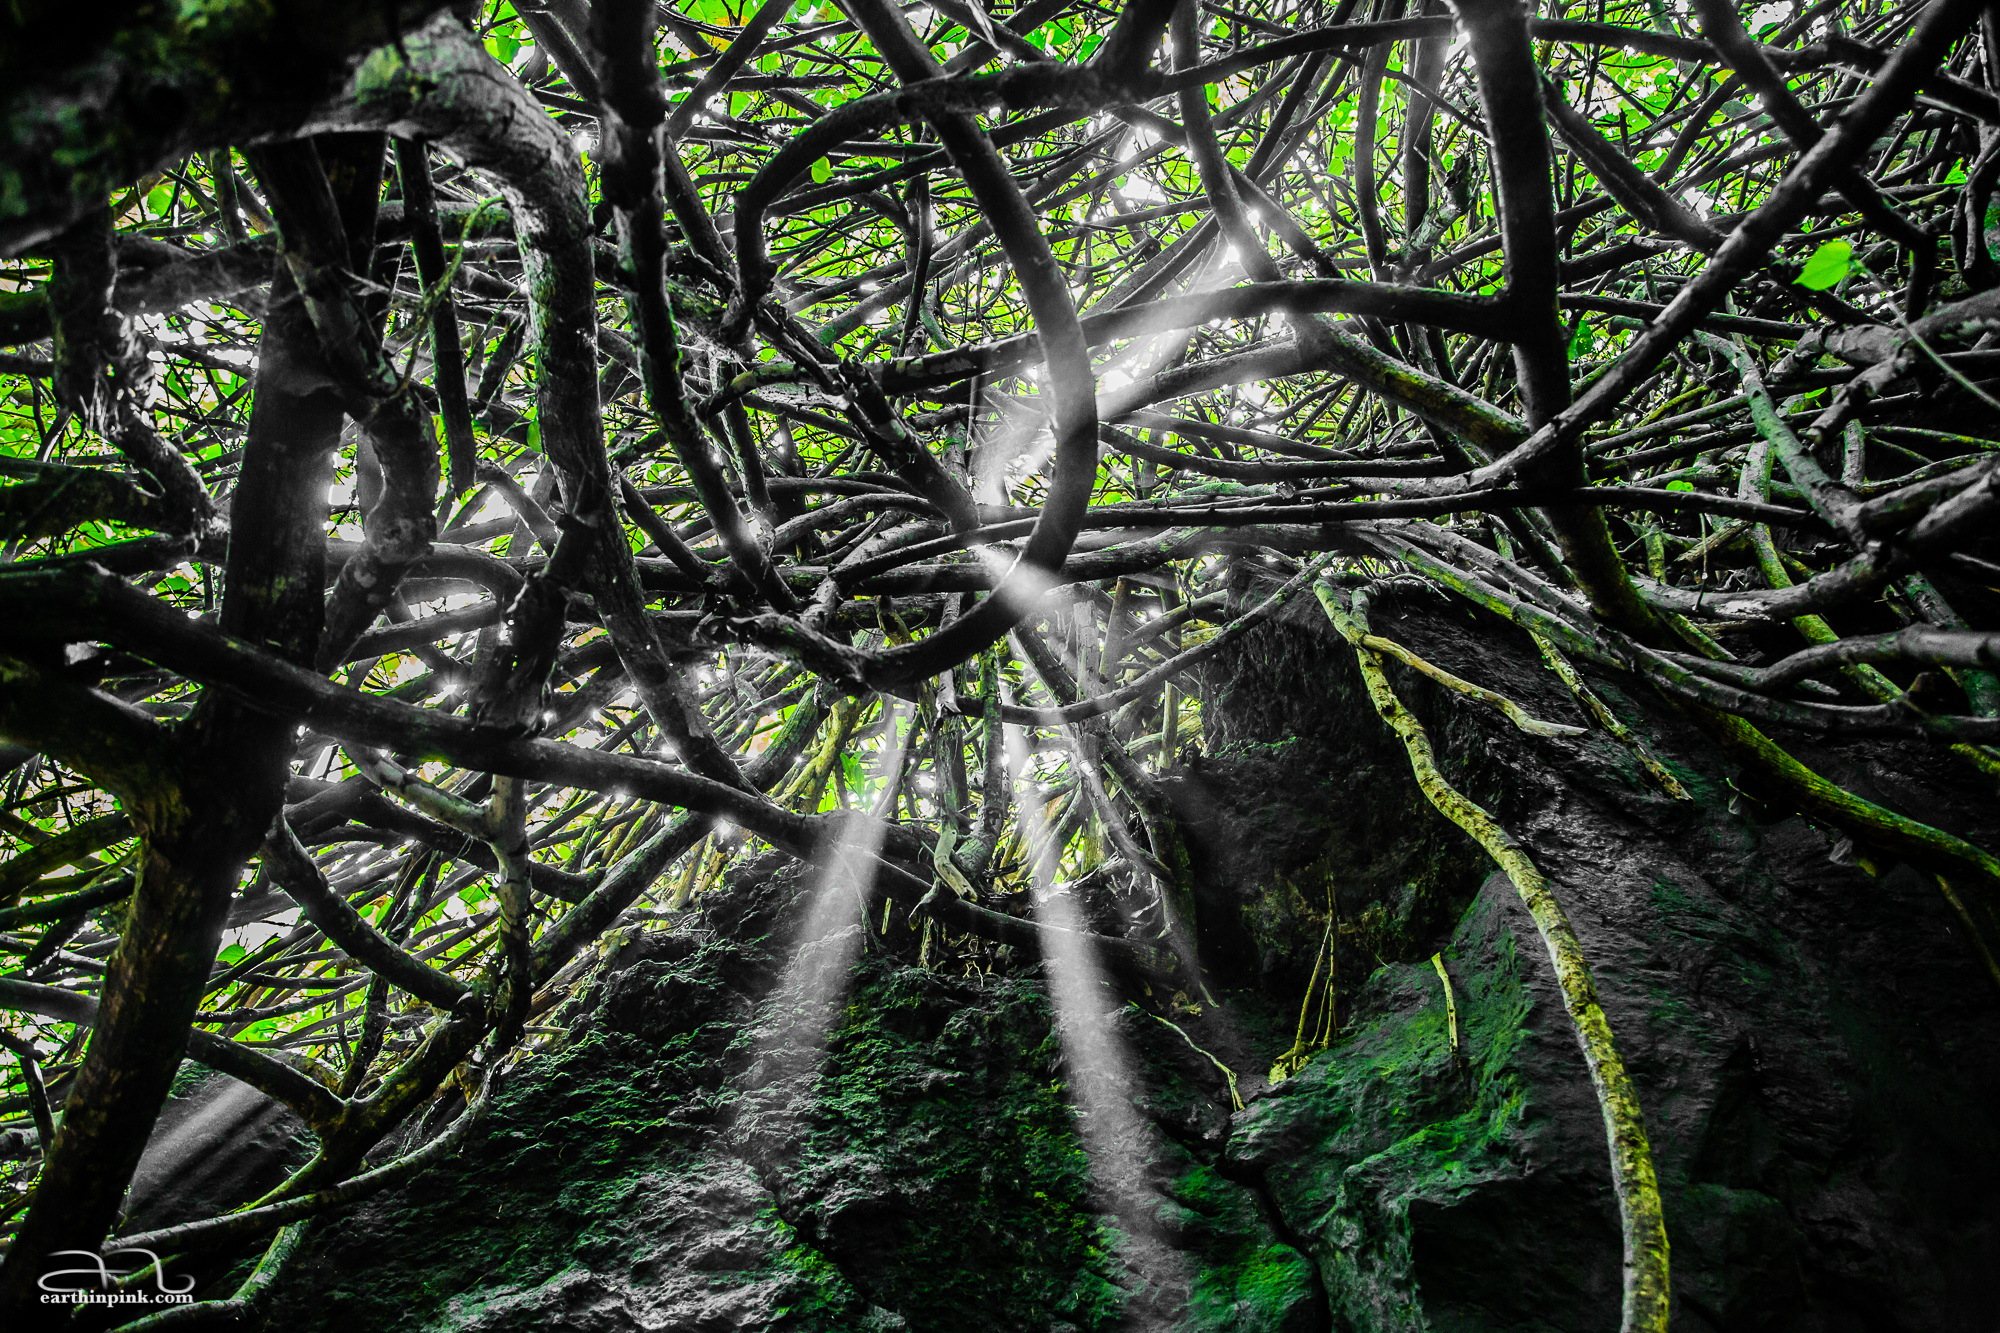 Light seeping in through a thicket in Wai'anapanapa State Park. This is an experiment in using only one color (in addition to tones of black and white) in a photo.